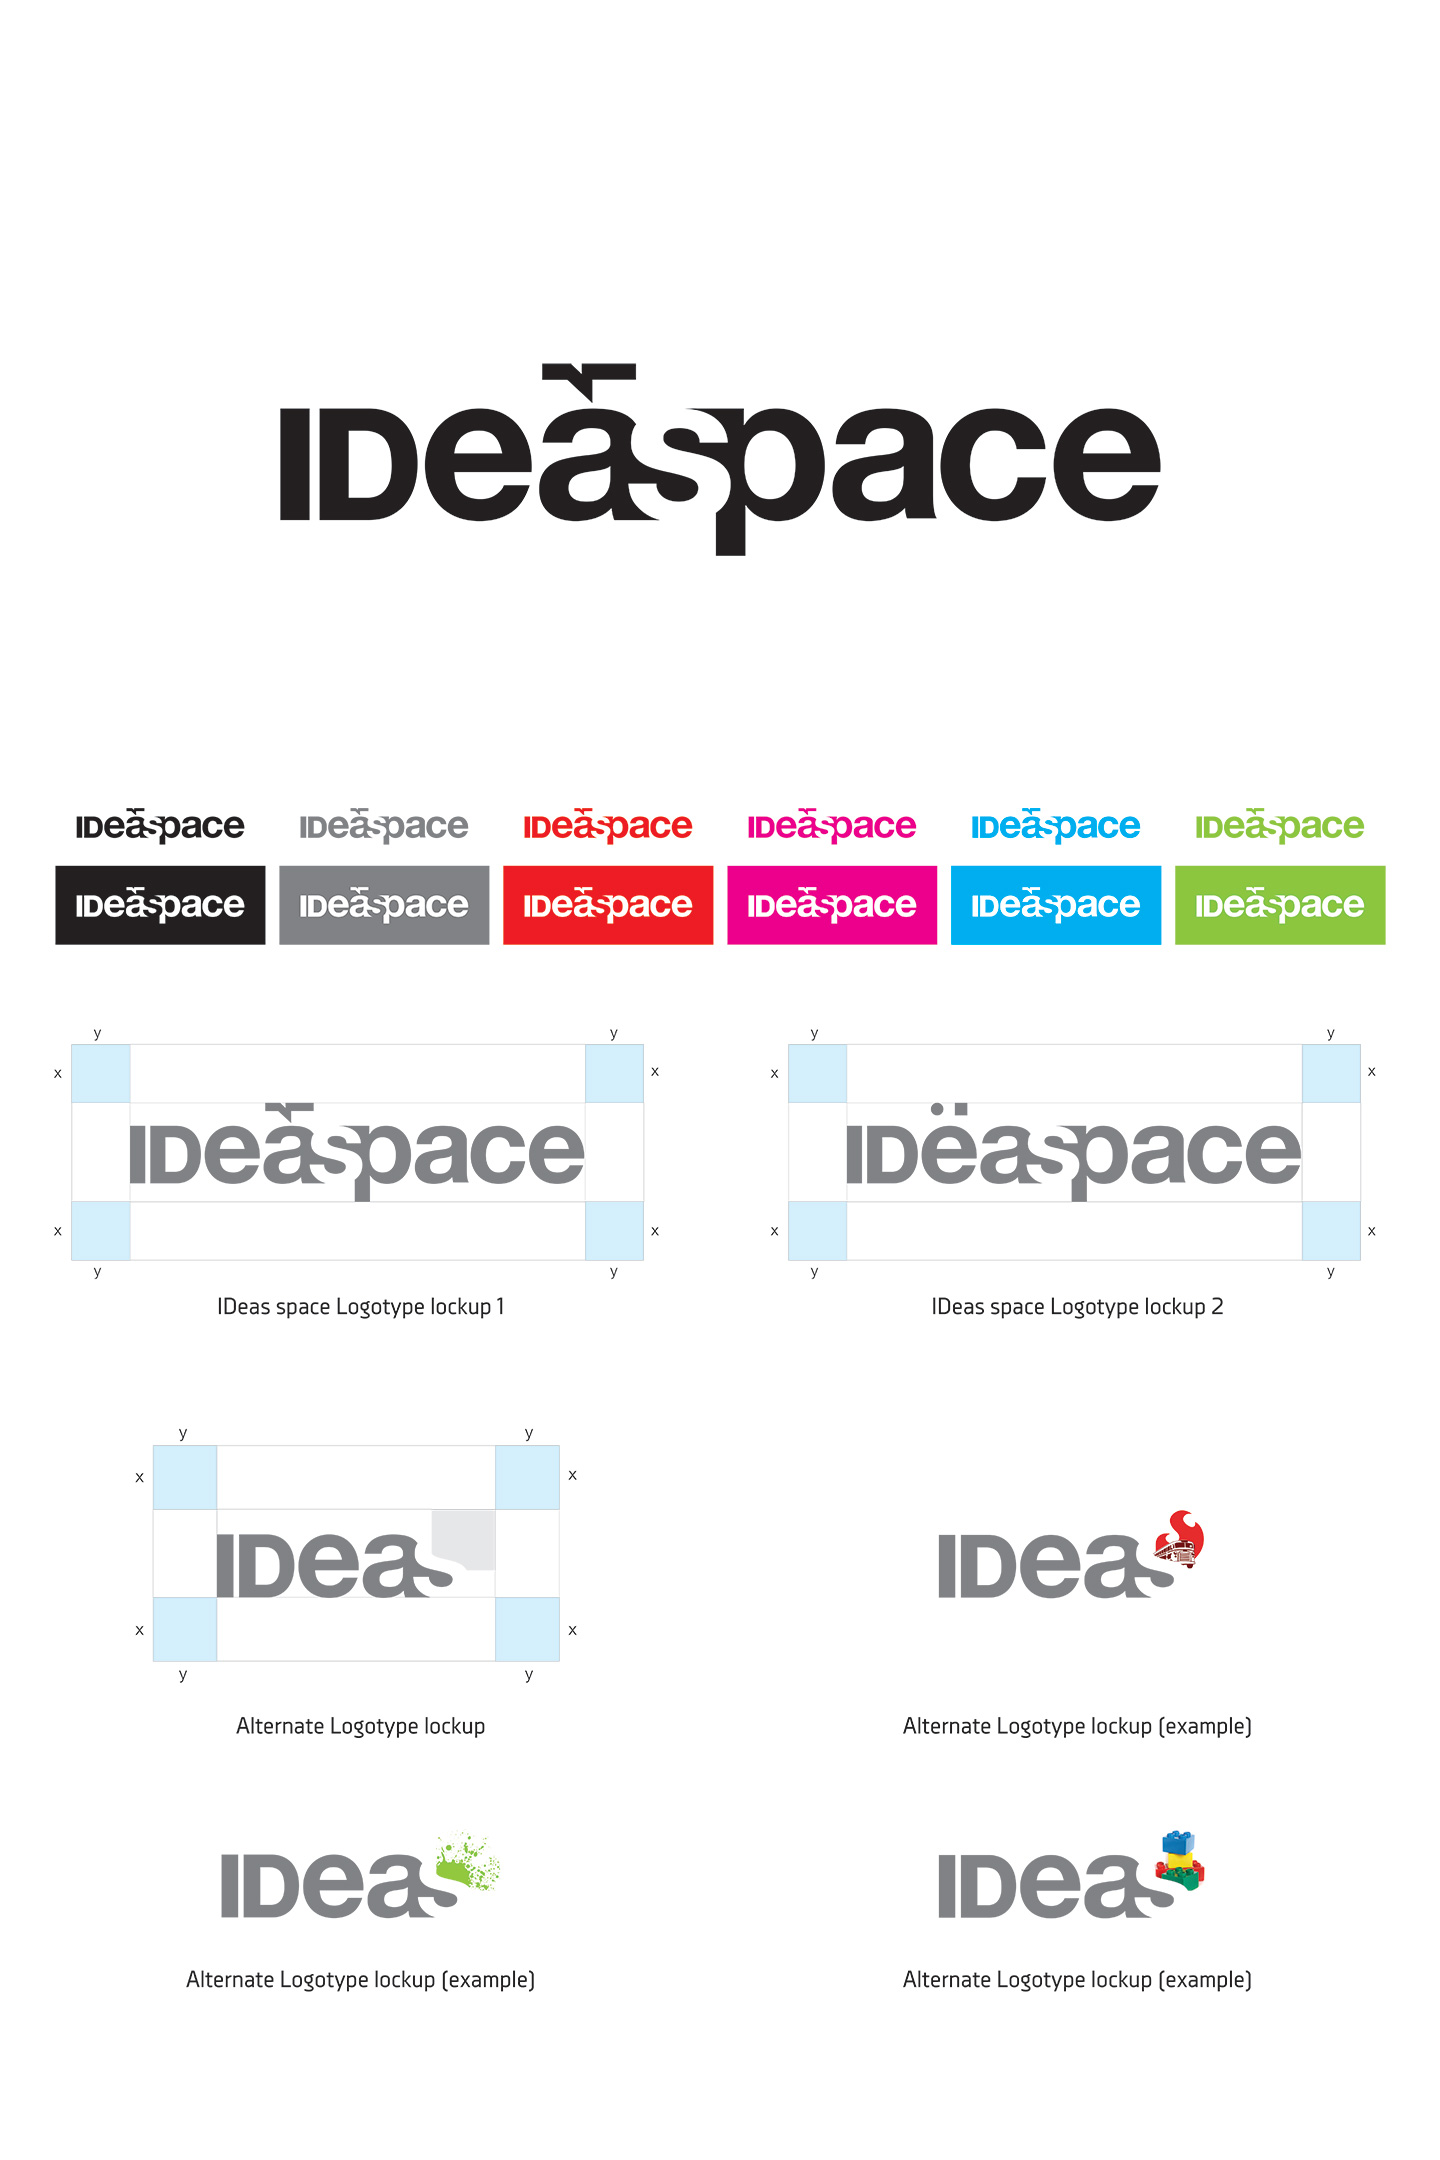 IDeaspace logotype and color scheme on a white piece of paper